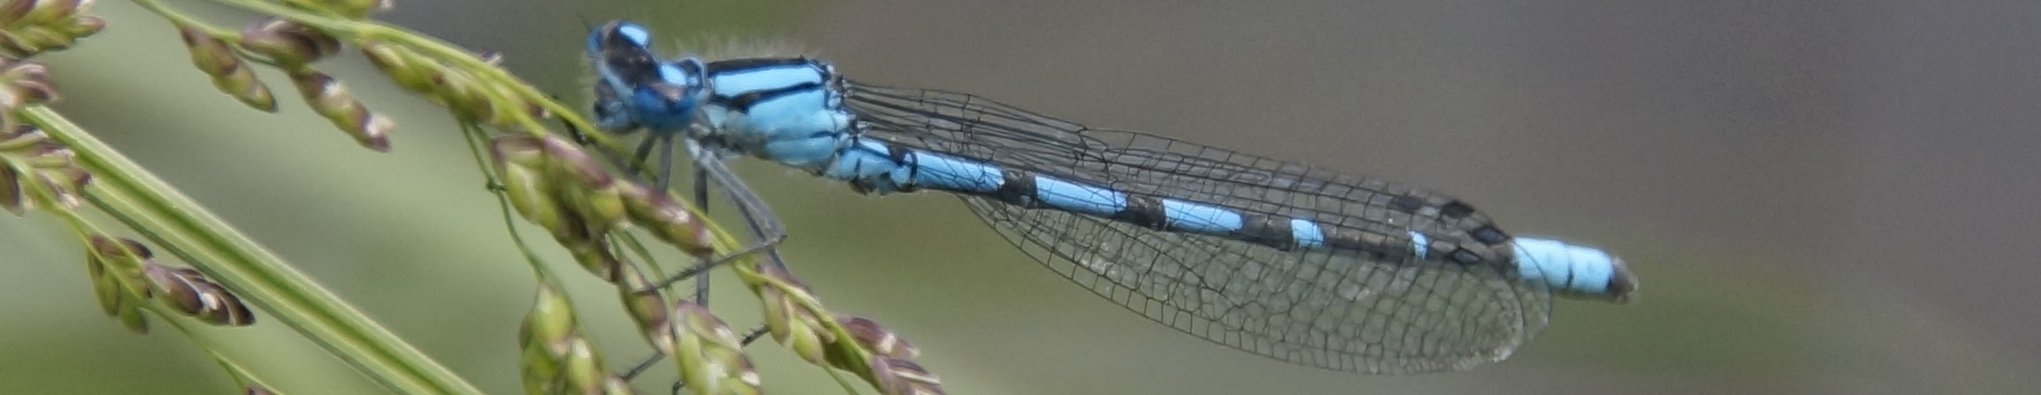 Common Blue Damselfly-cropped